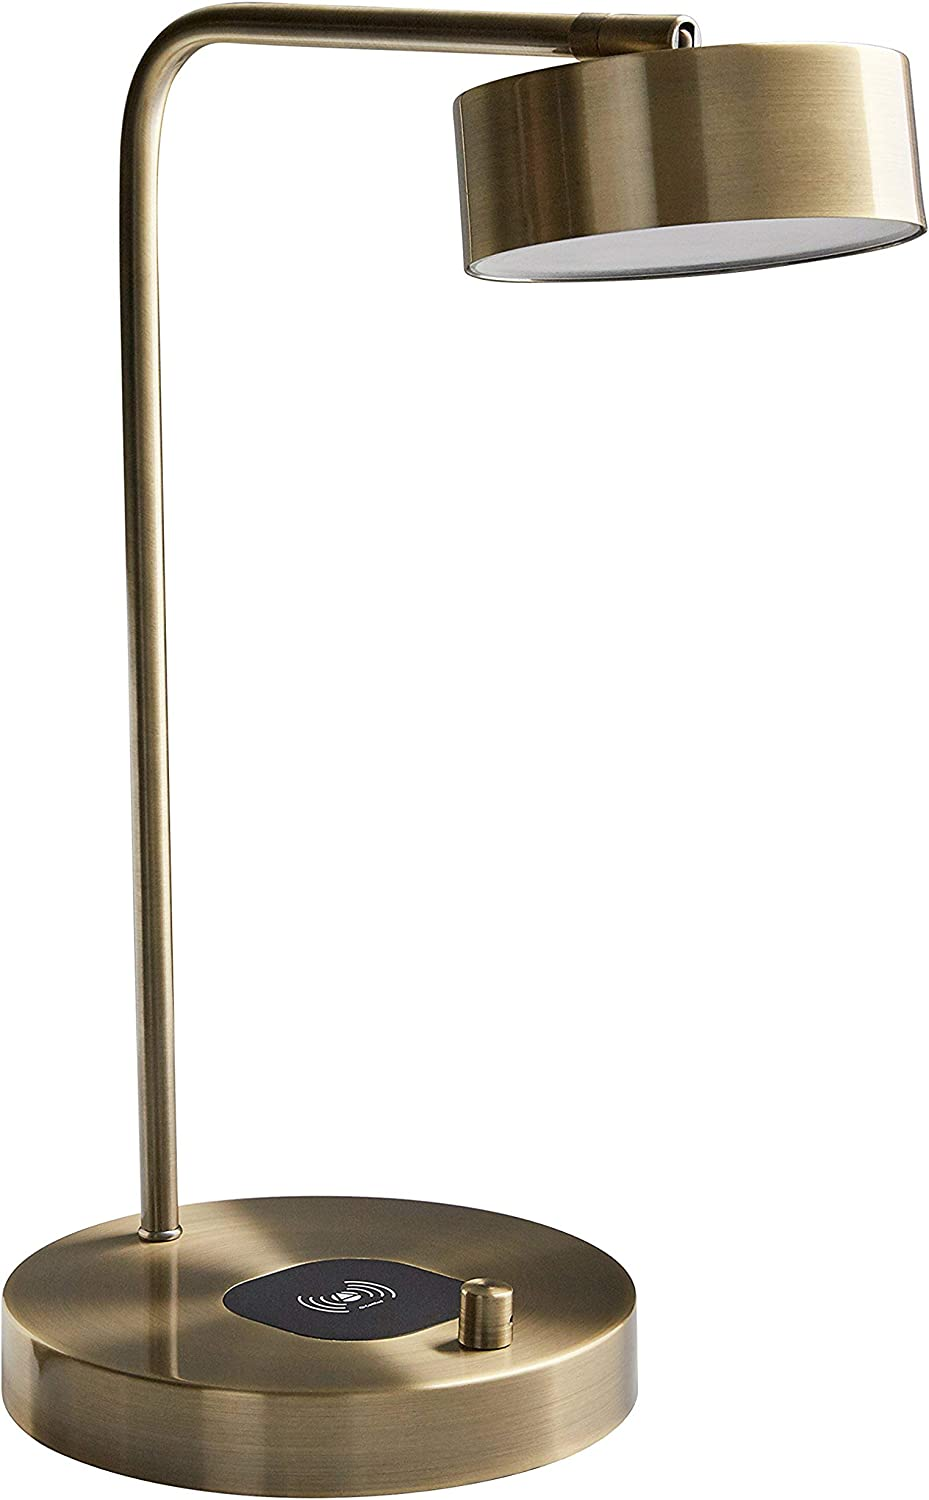 Stone & Beam Modern  Task Lamp, 18.5 H, Antique Brass with Wireless Charging